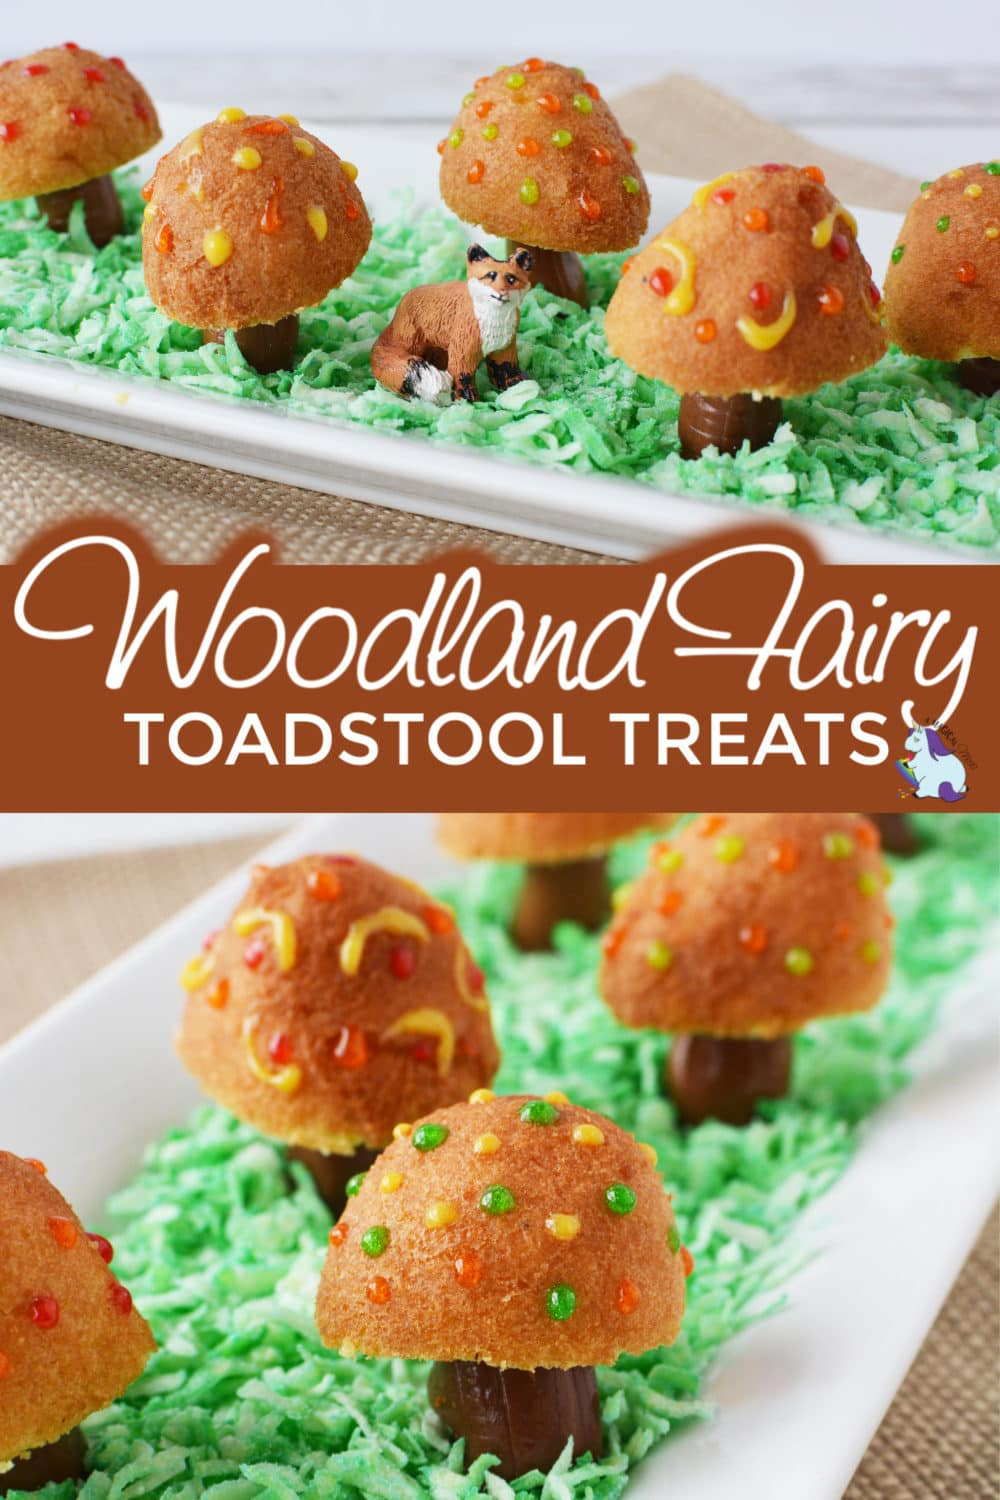 Woodland fairy Toadstool treats